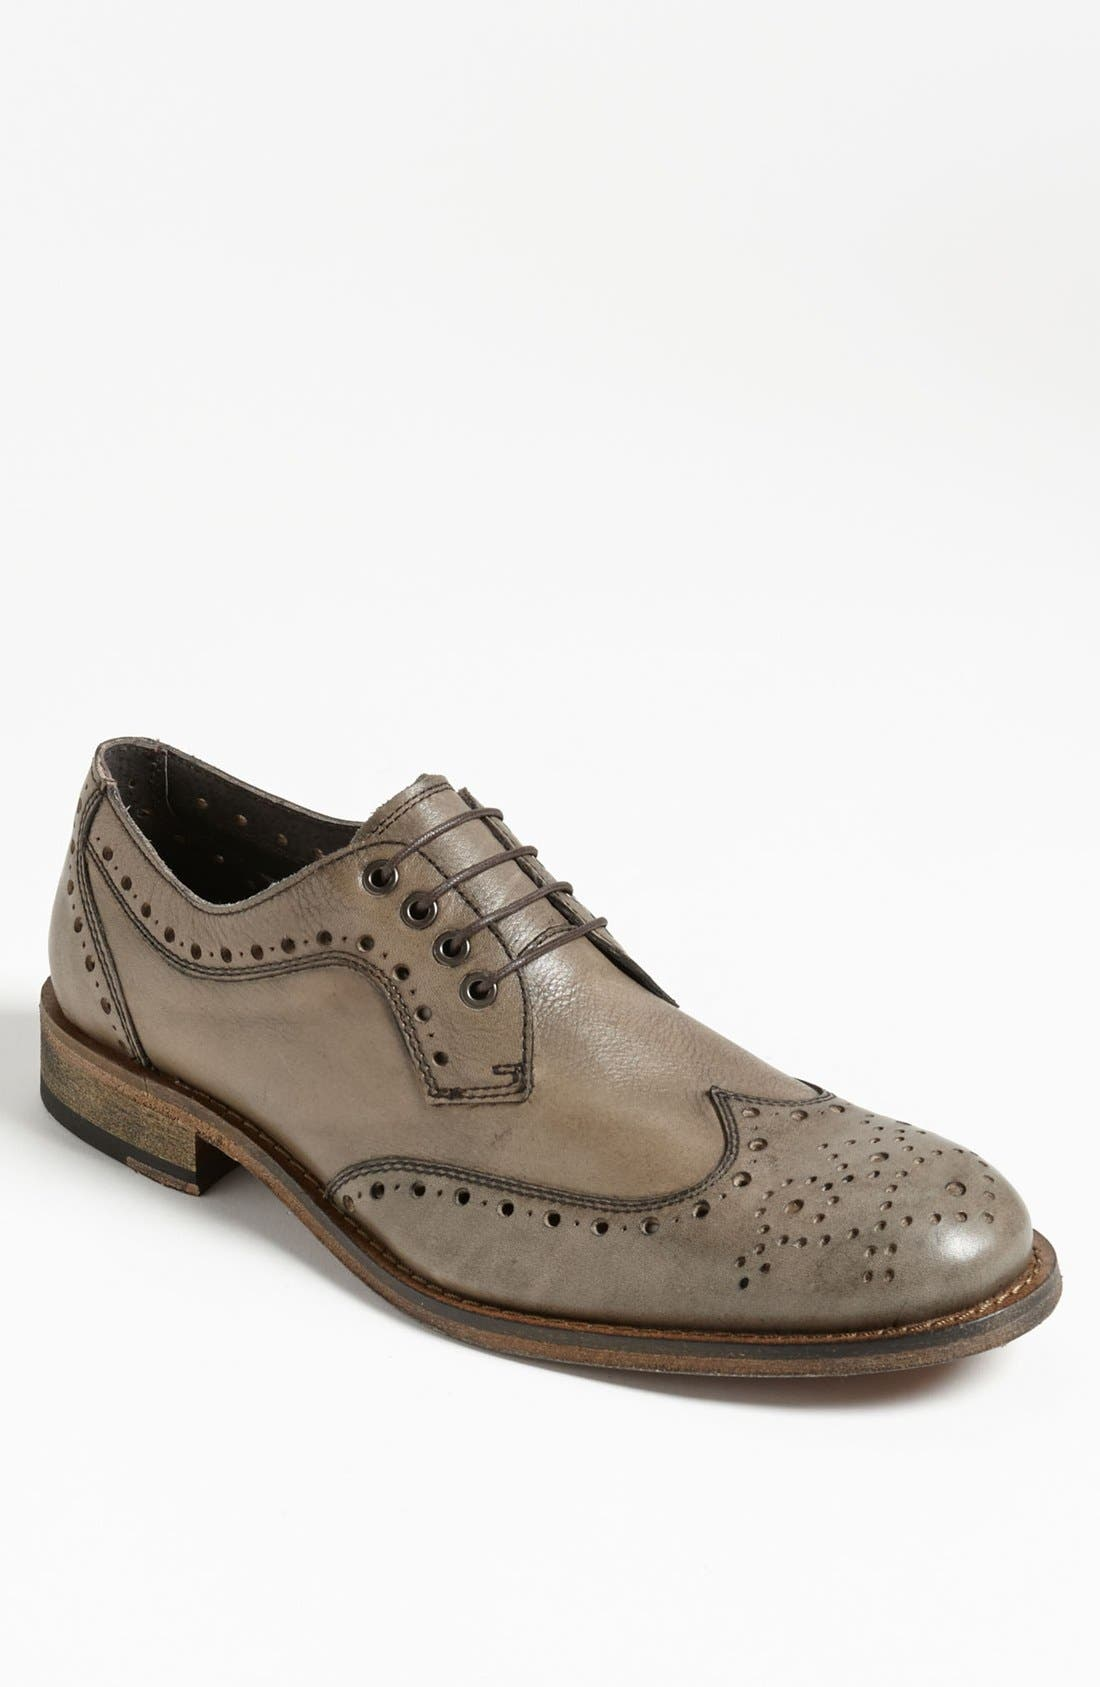 Main Image - Kenneth Cole New York 'Bear N Mind' Wingtip